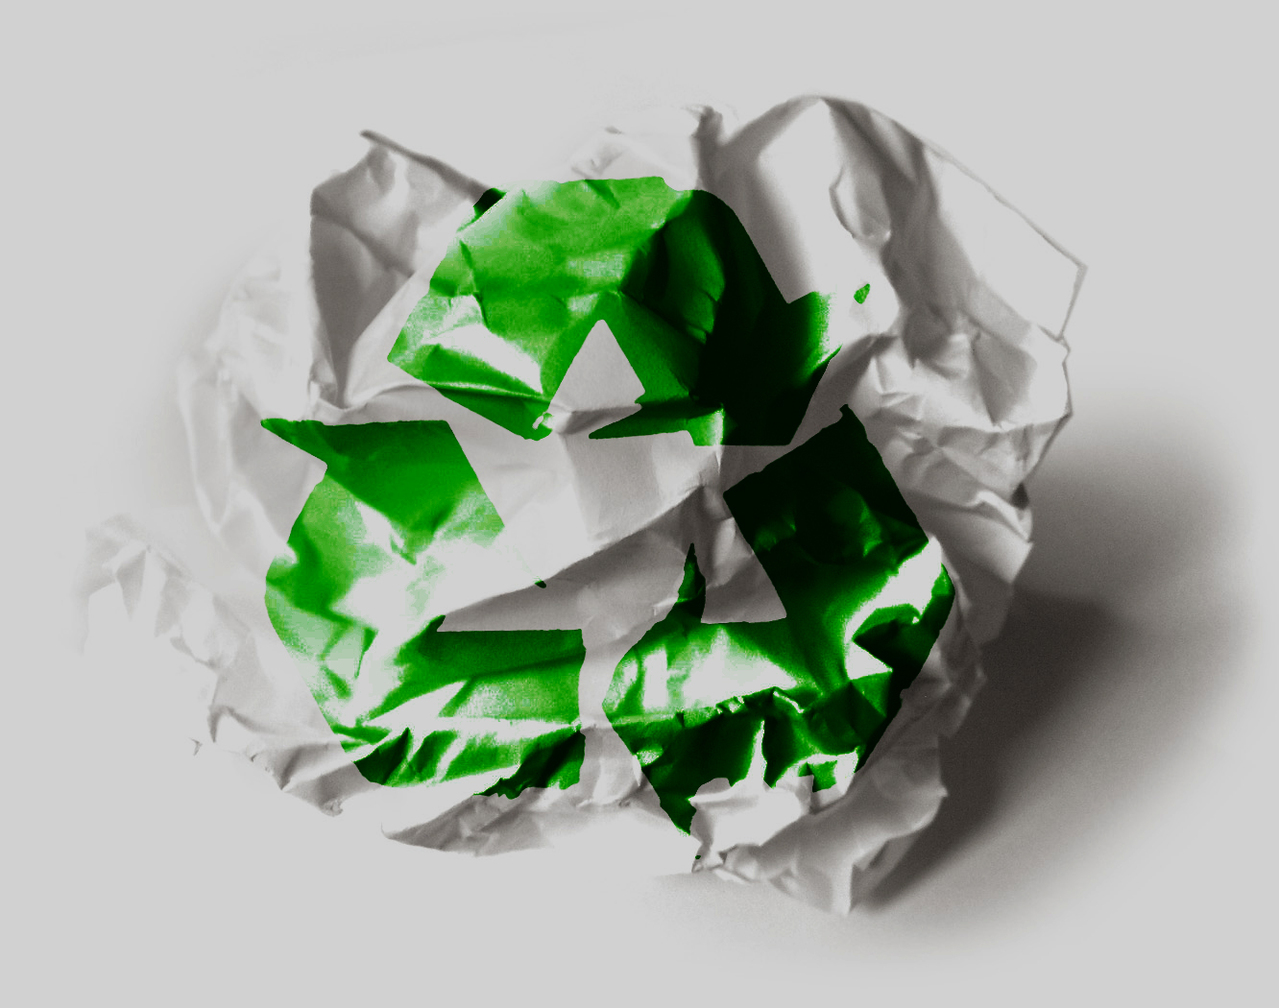 crumpled paper with recycling logo